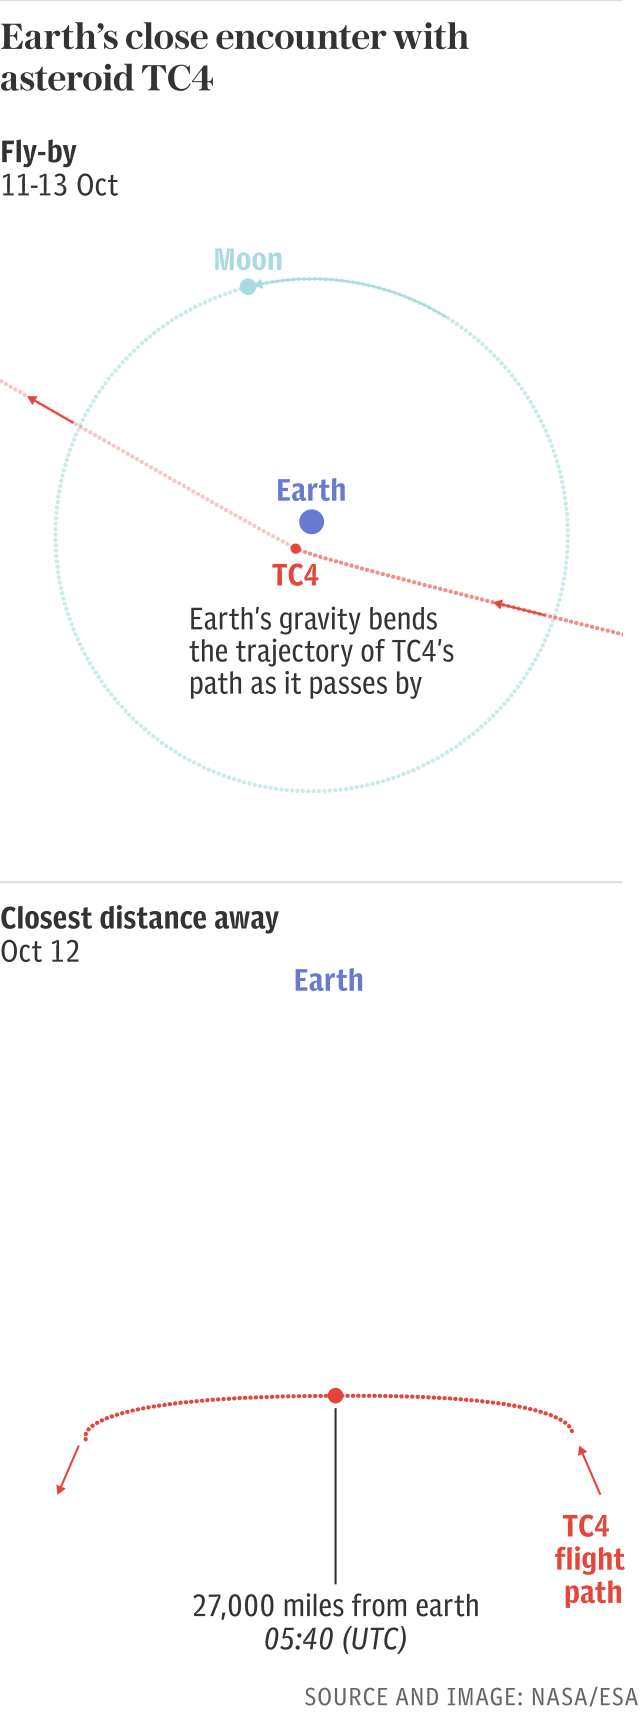 Earth's close encounter with asteroid TC4